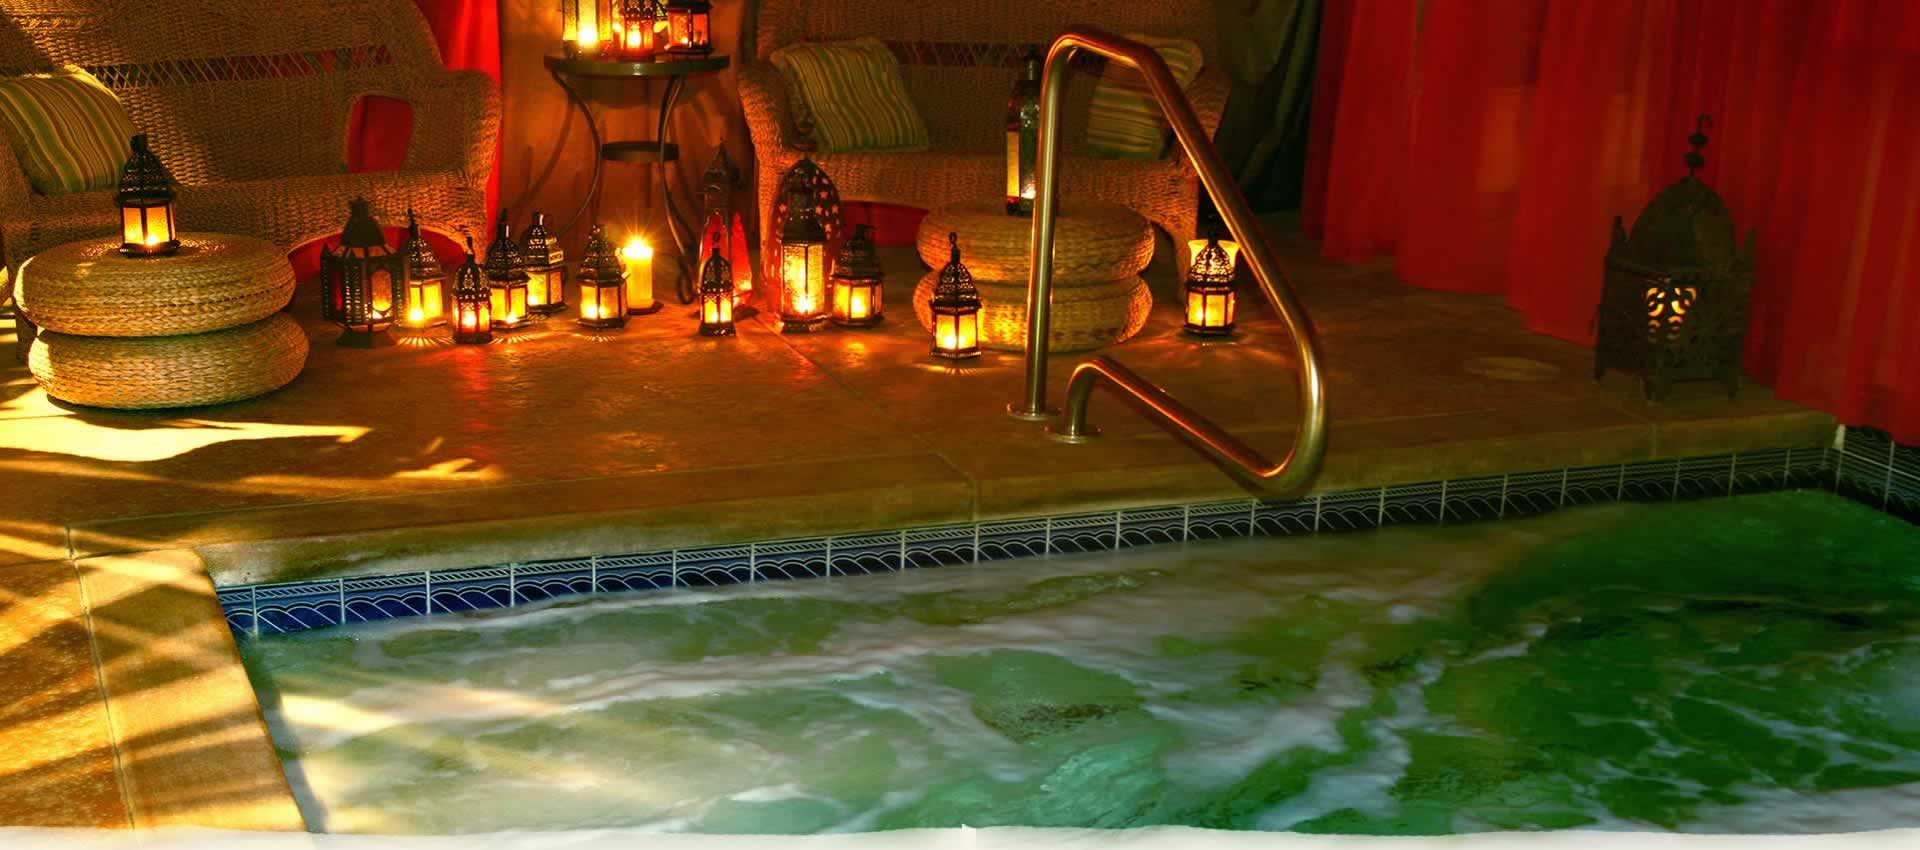 El Morocco covered Jacuzzi-style spa with glowing lanterns